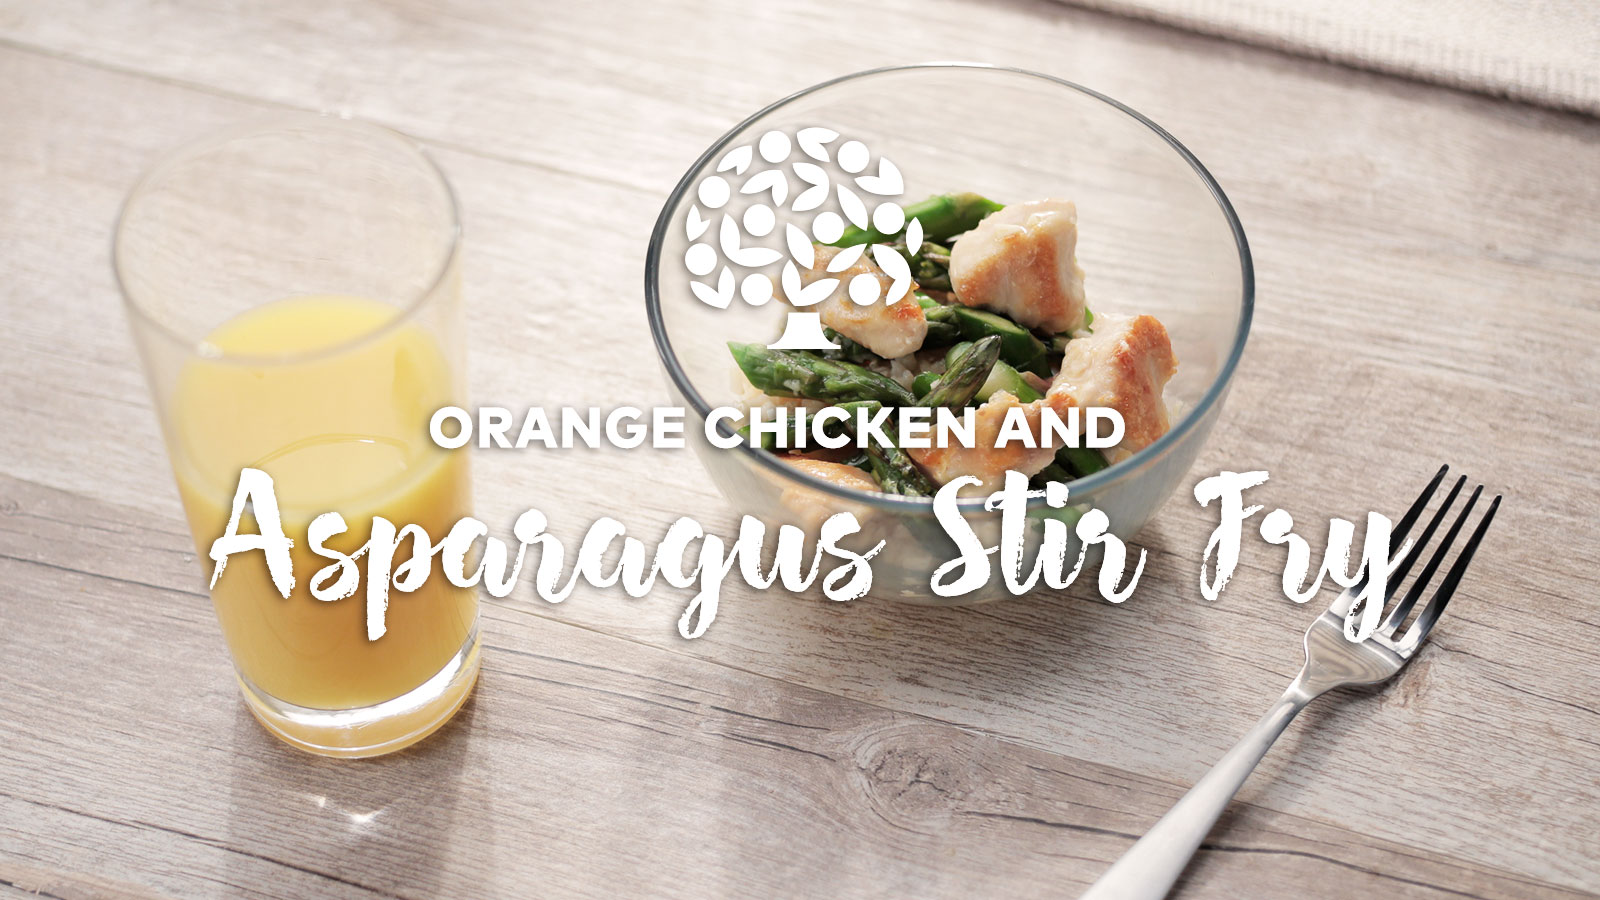 Orange Chicken Asparagus Stir Fry